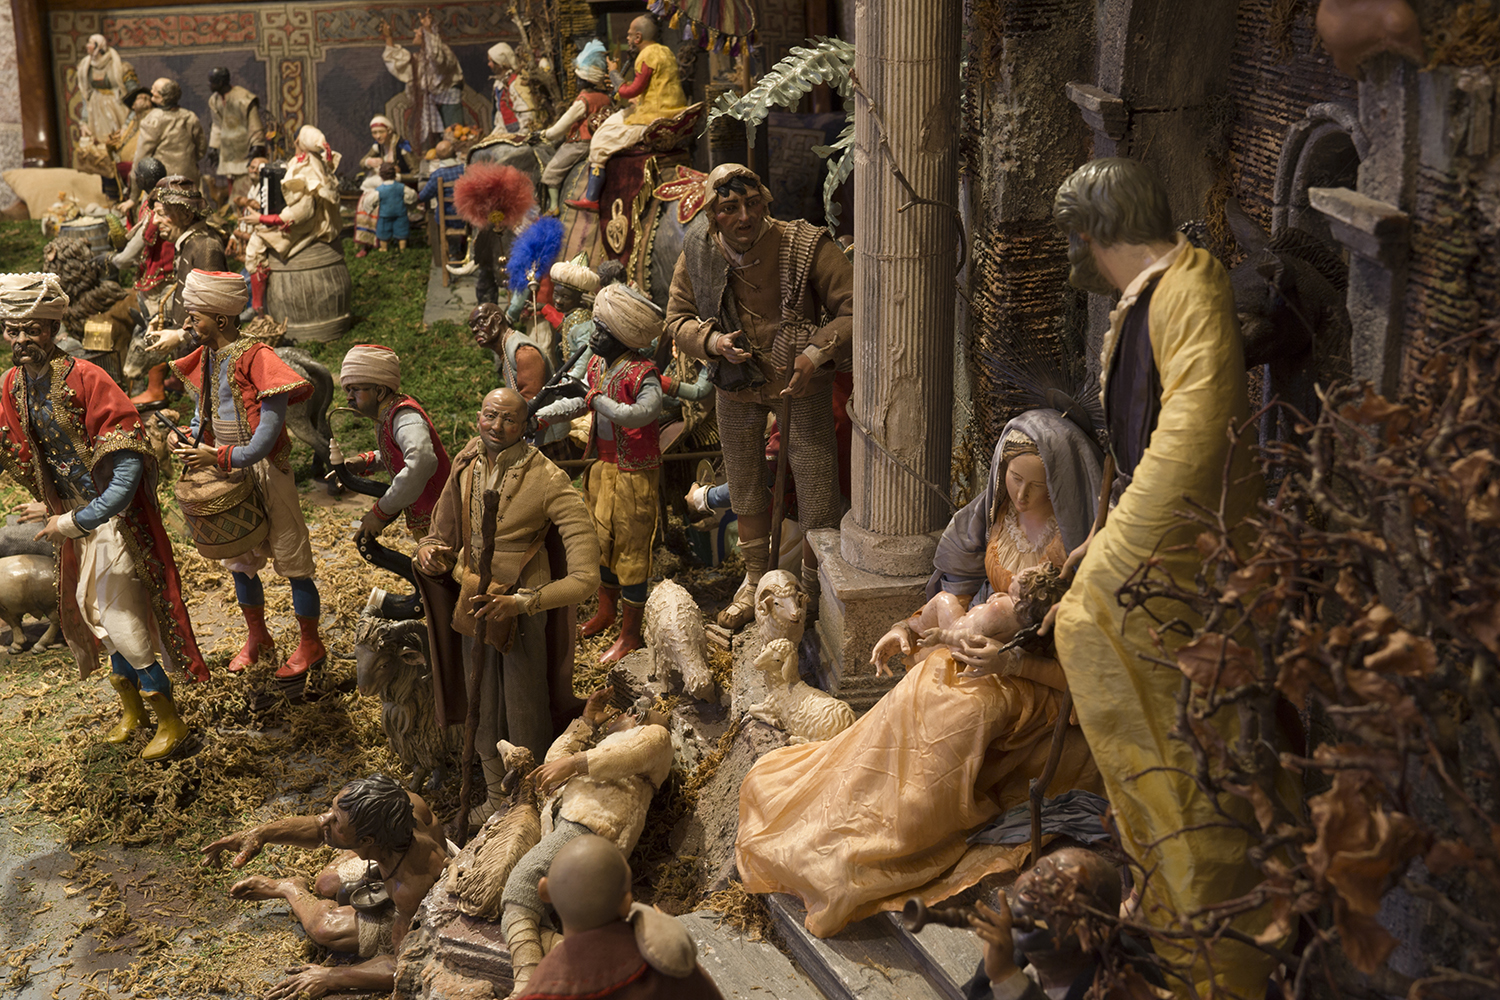 """Figure 10:The 100+ figures in this large 19th- and 20th-century Presepio were collected in Italy over a period of more than thirty years by the late Elizabeth Anne Evans of Bucks County, Pennsylvania. A Presepio, which has been called """"the translation of the Bible into Neapolitan dialect,"""" represents daily life in 18th-century Naples, a bustling port city. The miracle of the Nativity is depicted as taking place amid crumbling Roman ruins, signifying the end of paganism and the dawn of Christianity. On loan from the Fleisher Art Memorial, Philadelphia, Pennsylvania."""